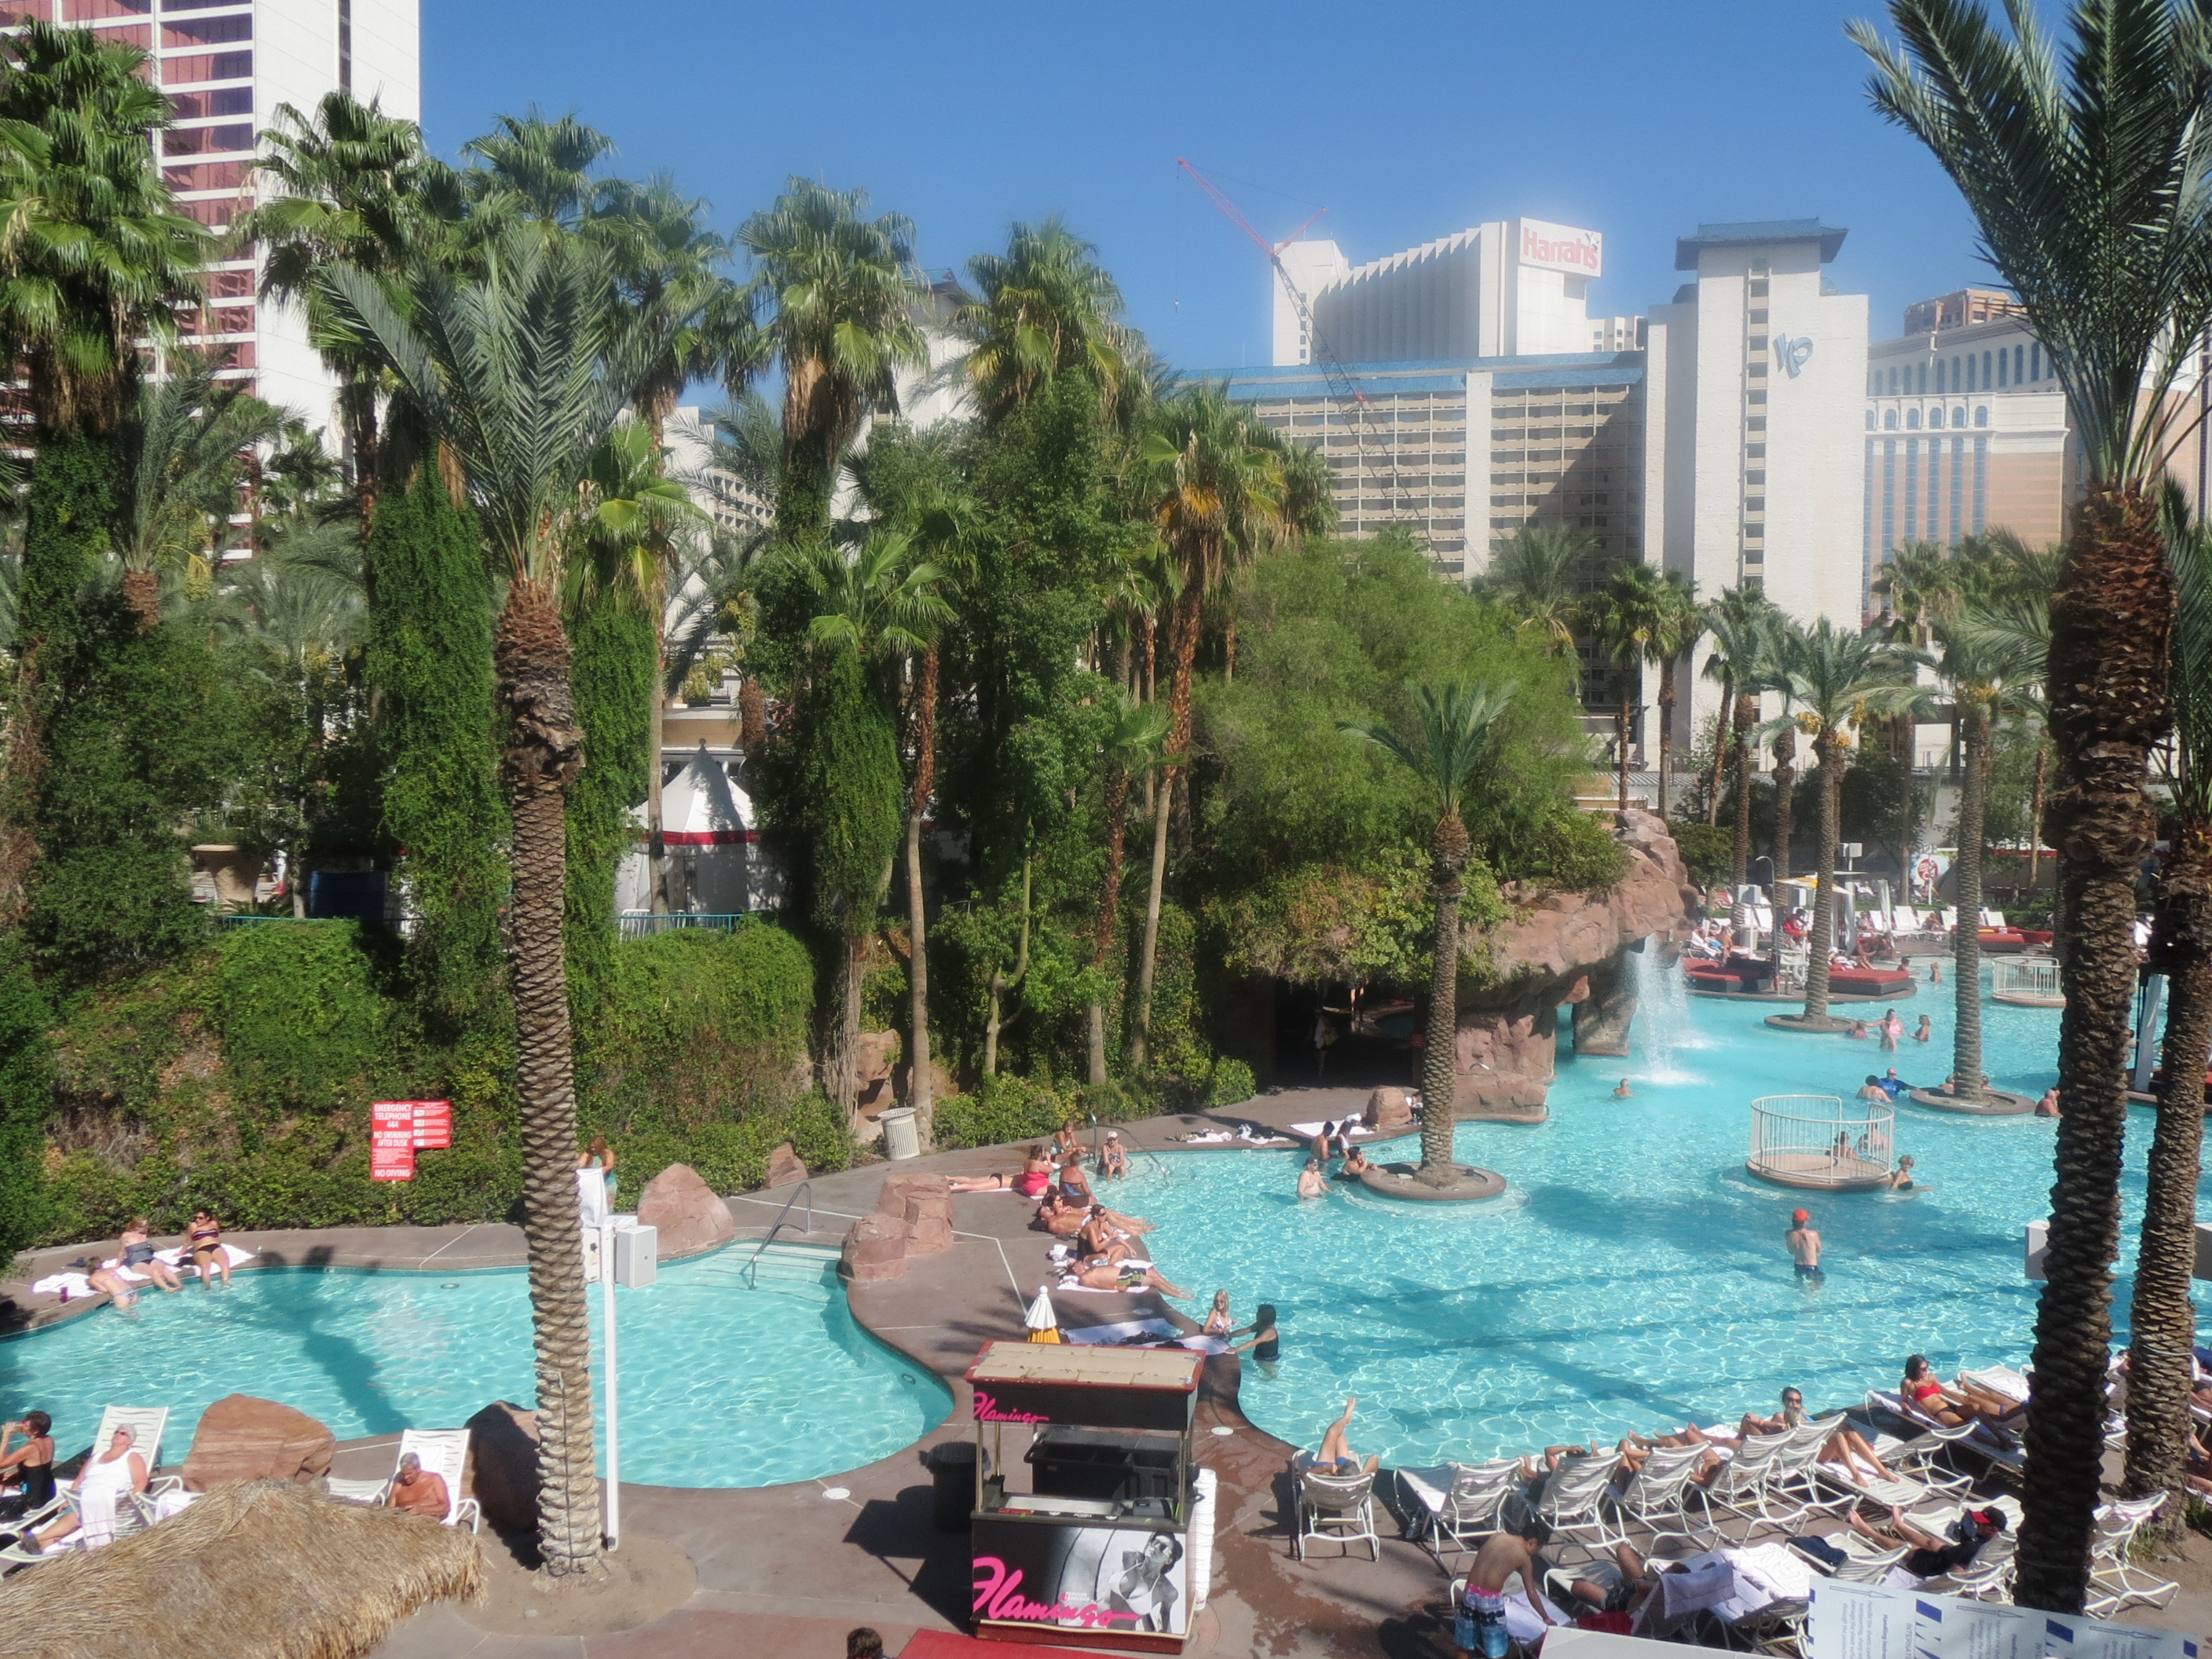 Flamingo Las Vegas Kid Pool Day 8 Saturday 22nd Las Vegas The Day I Fit Inside My